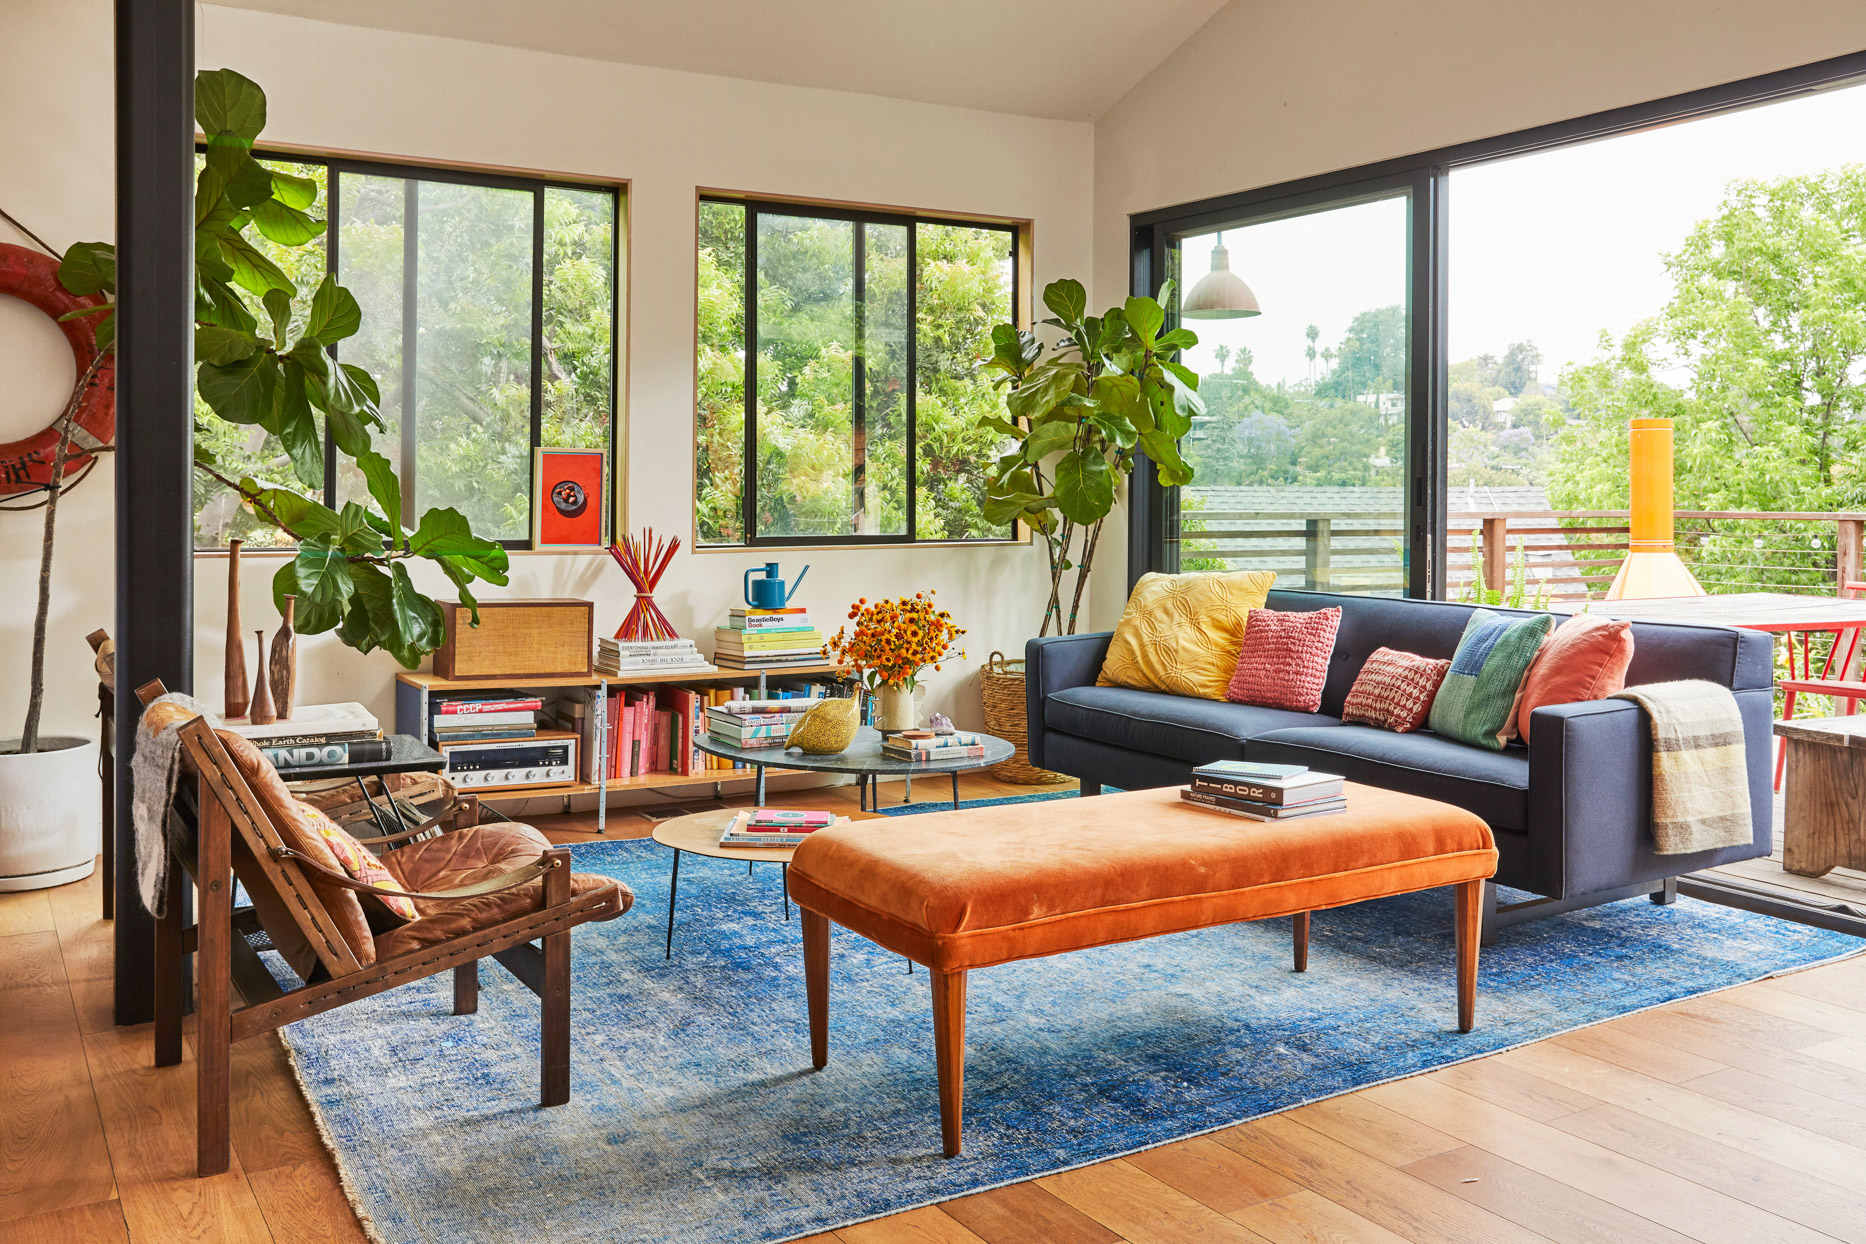 bright colorful living room with large windows and plants